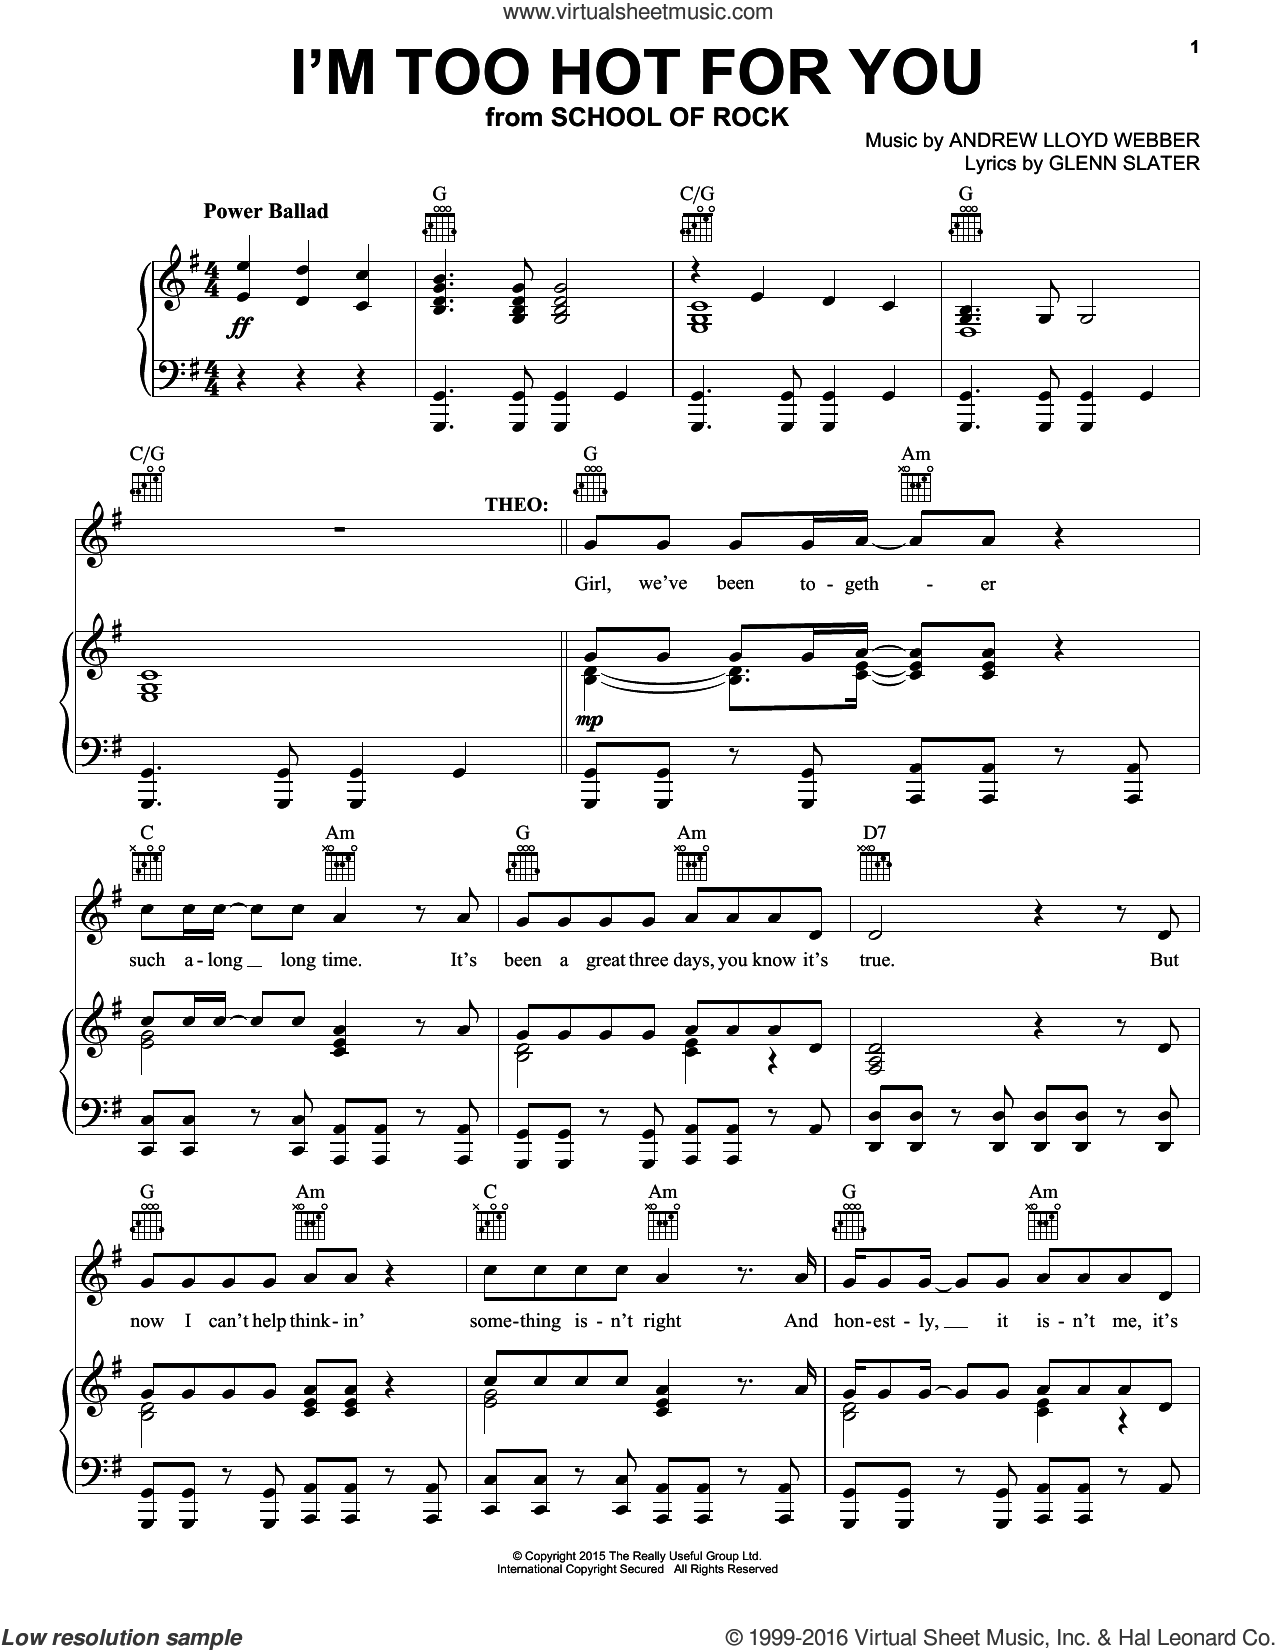 I'm Too Hot For You (from School of Rock: The Musical) sheet music for voice, piano or guitar by Andrew Lloyd Webber and Glenn Slater, intermediate skill level